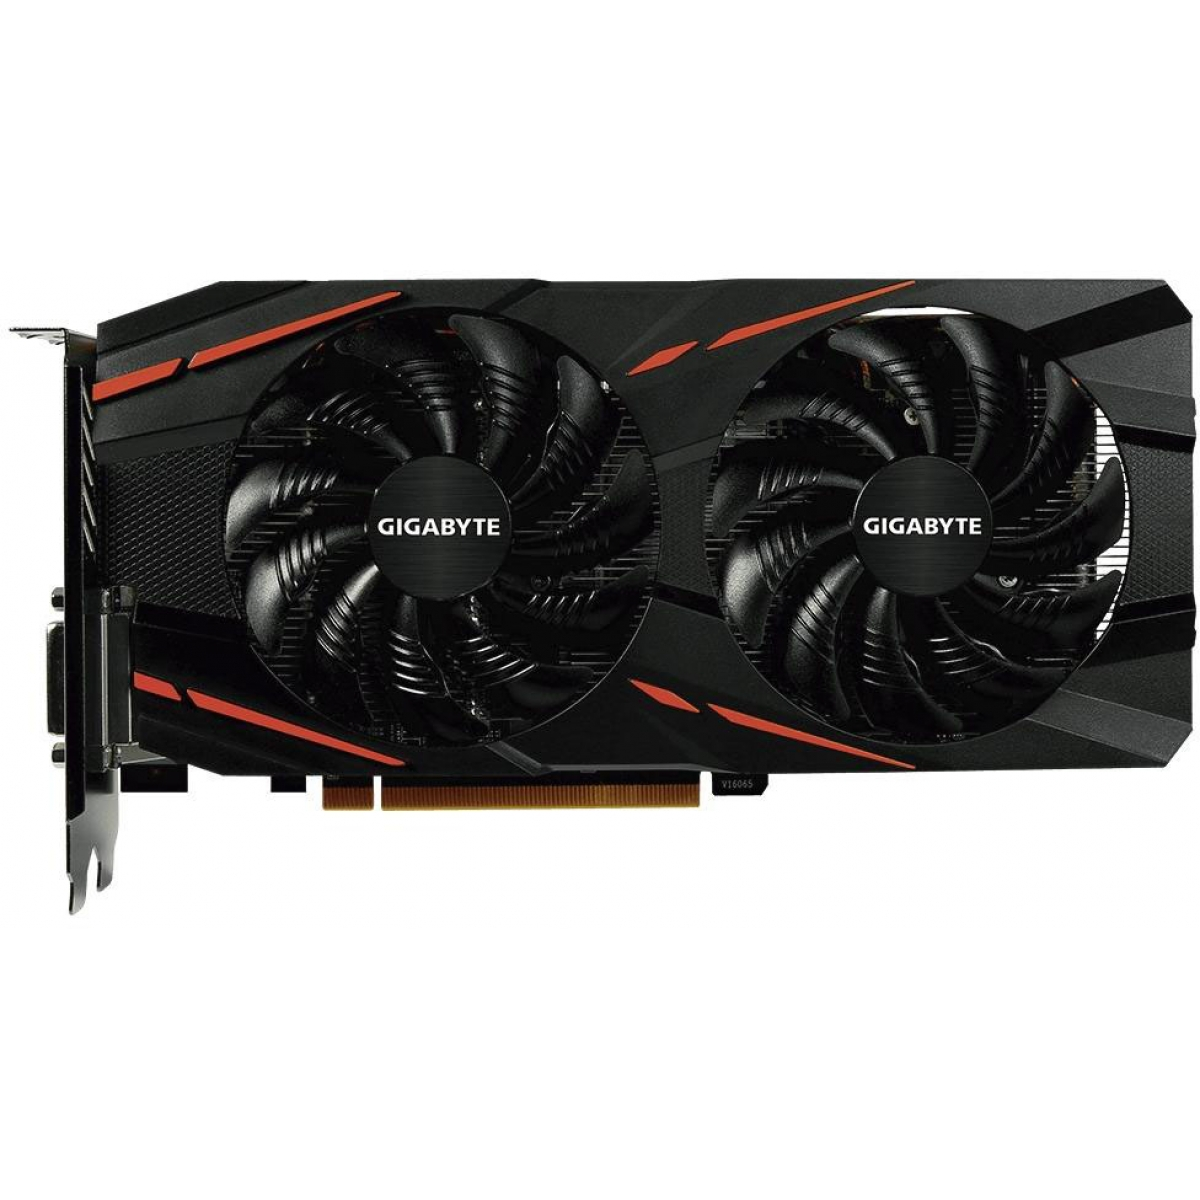 Placa de Vídeo Gigabyte Radeon RX 570 Gaming Dual, 8GB GDDR5, 256Bit, GV-RX570GAMING-8GD